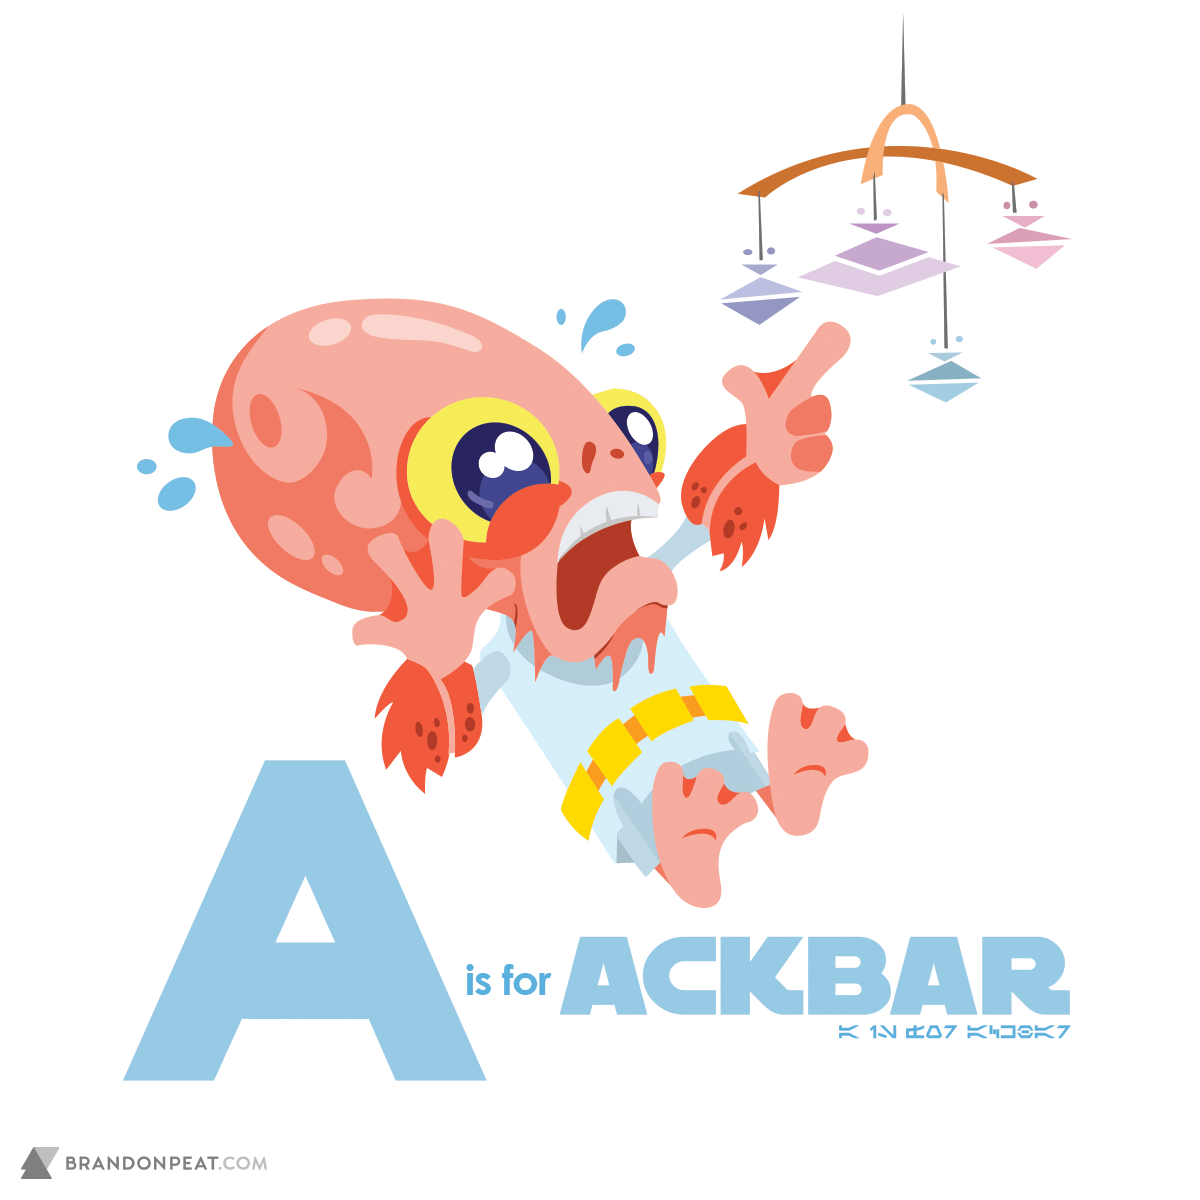 A Is For Ackbar: A Is For Ackbar